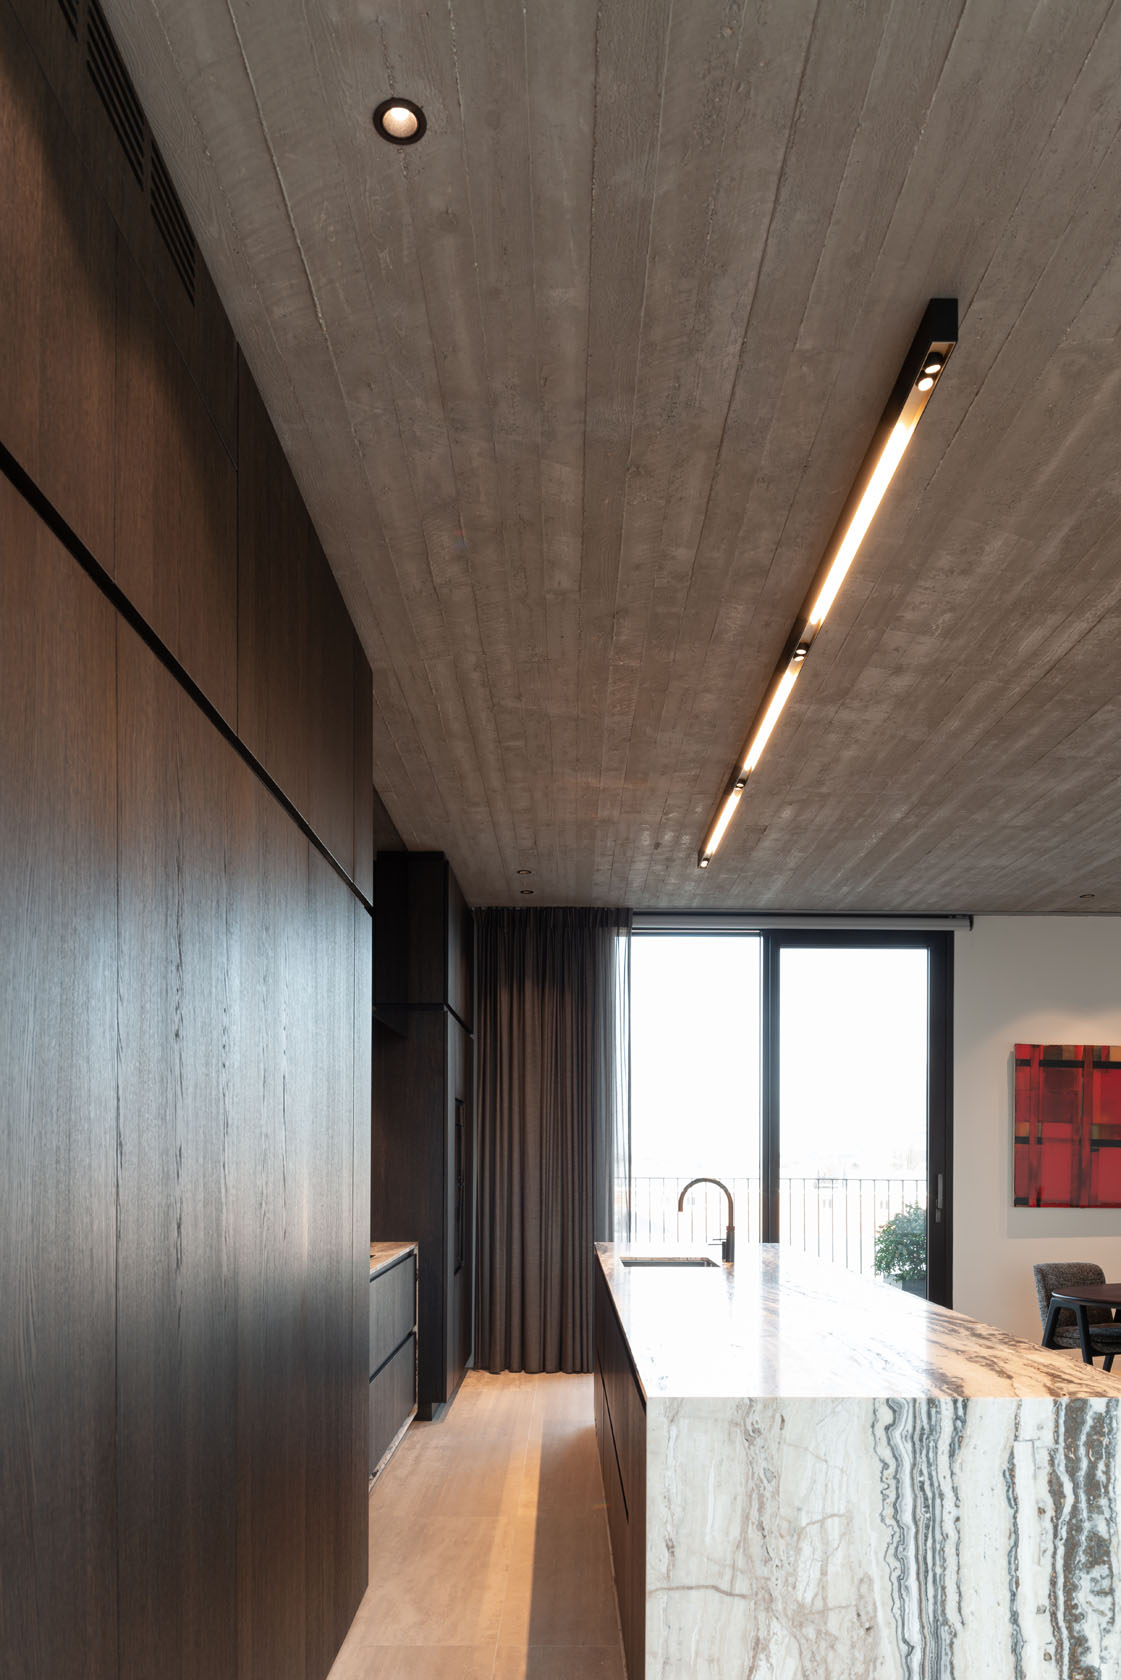 Loft, Antwerp (BE) image 23